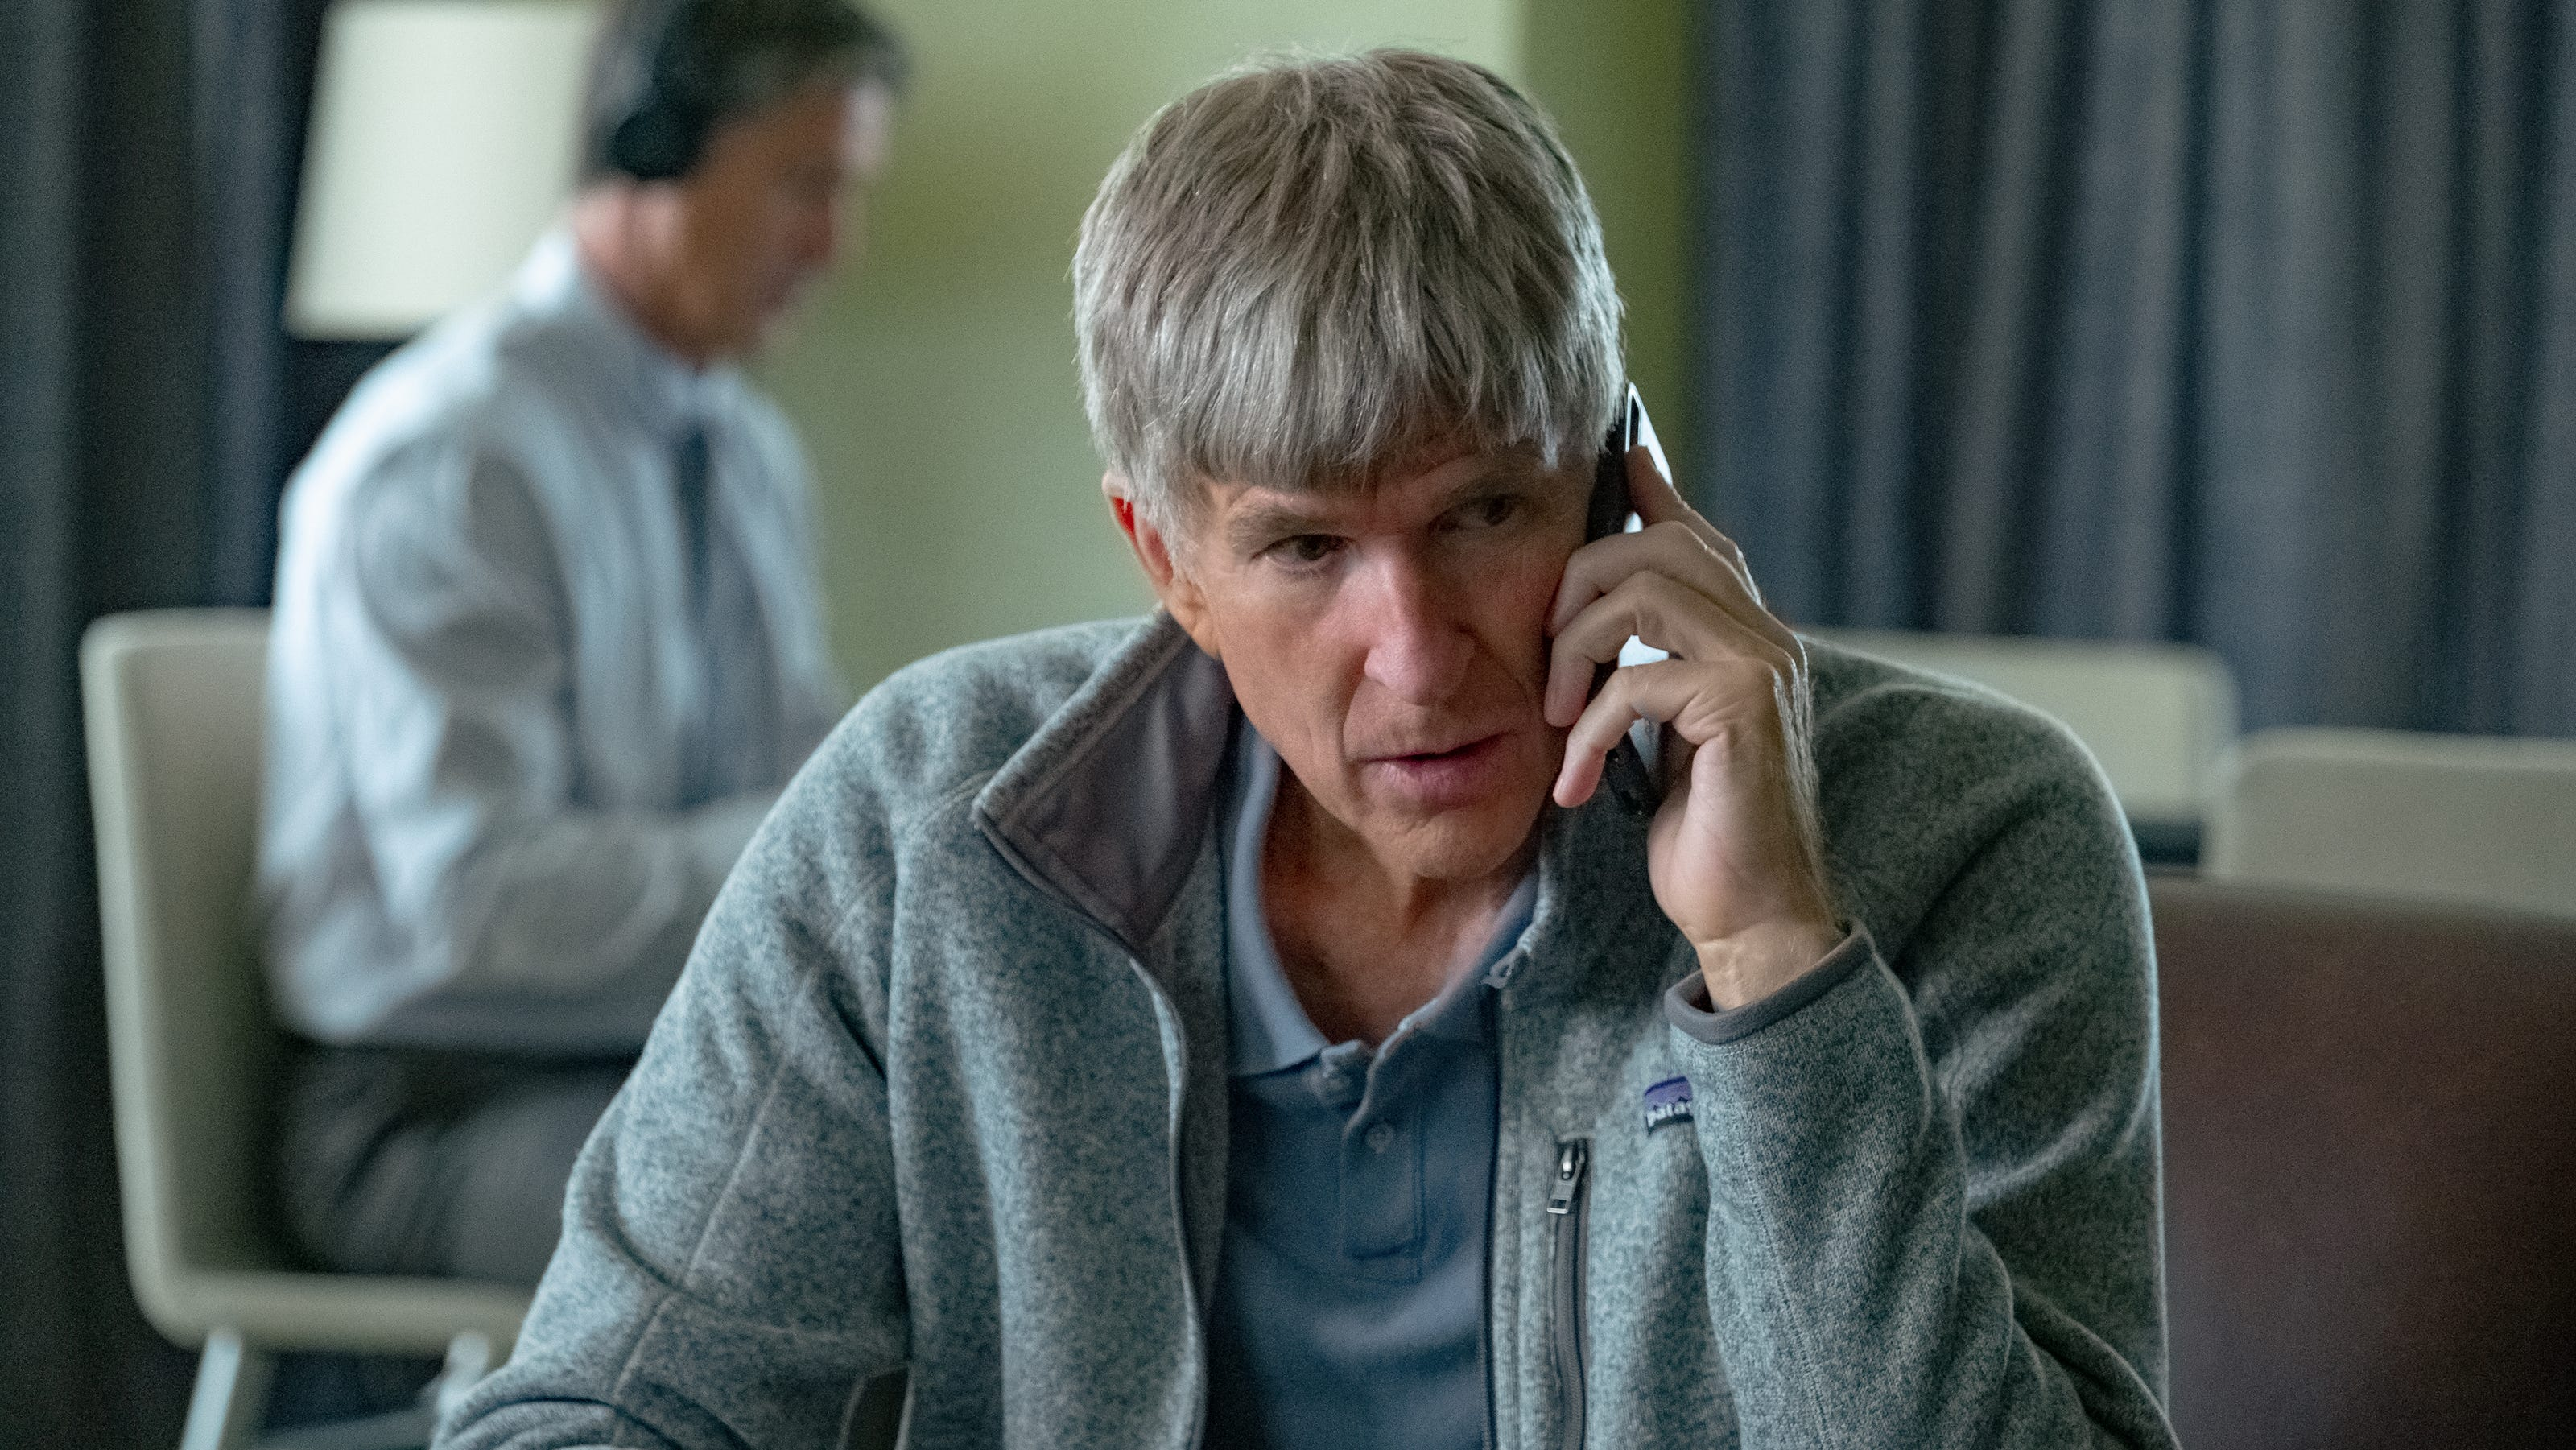 Netflix college admissions scandal doc 'Varsity Blues' is terrible